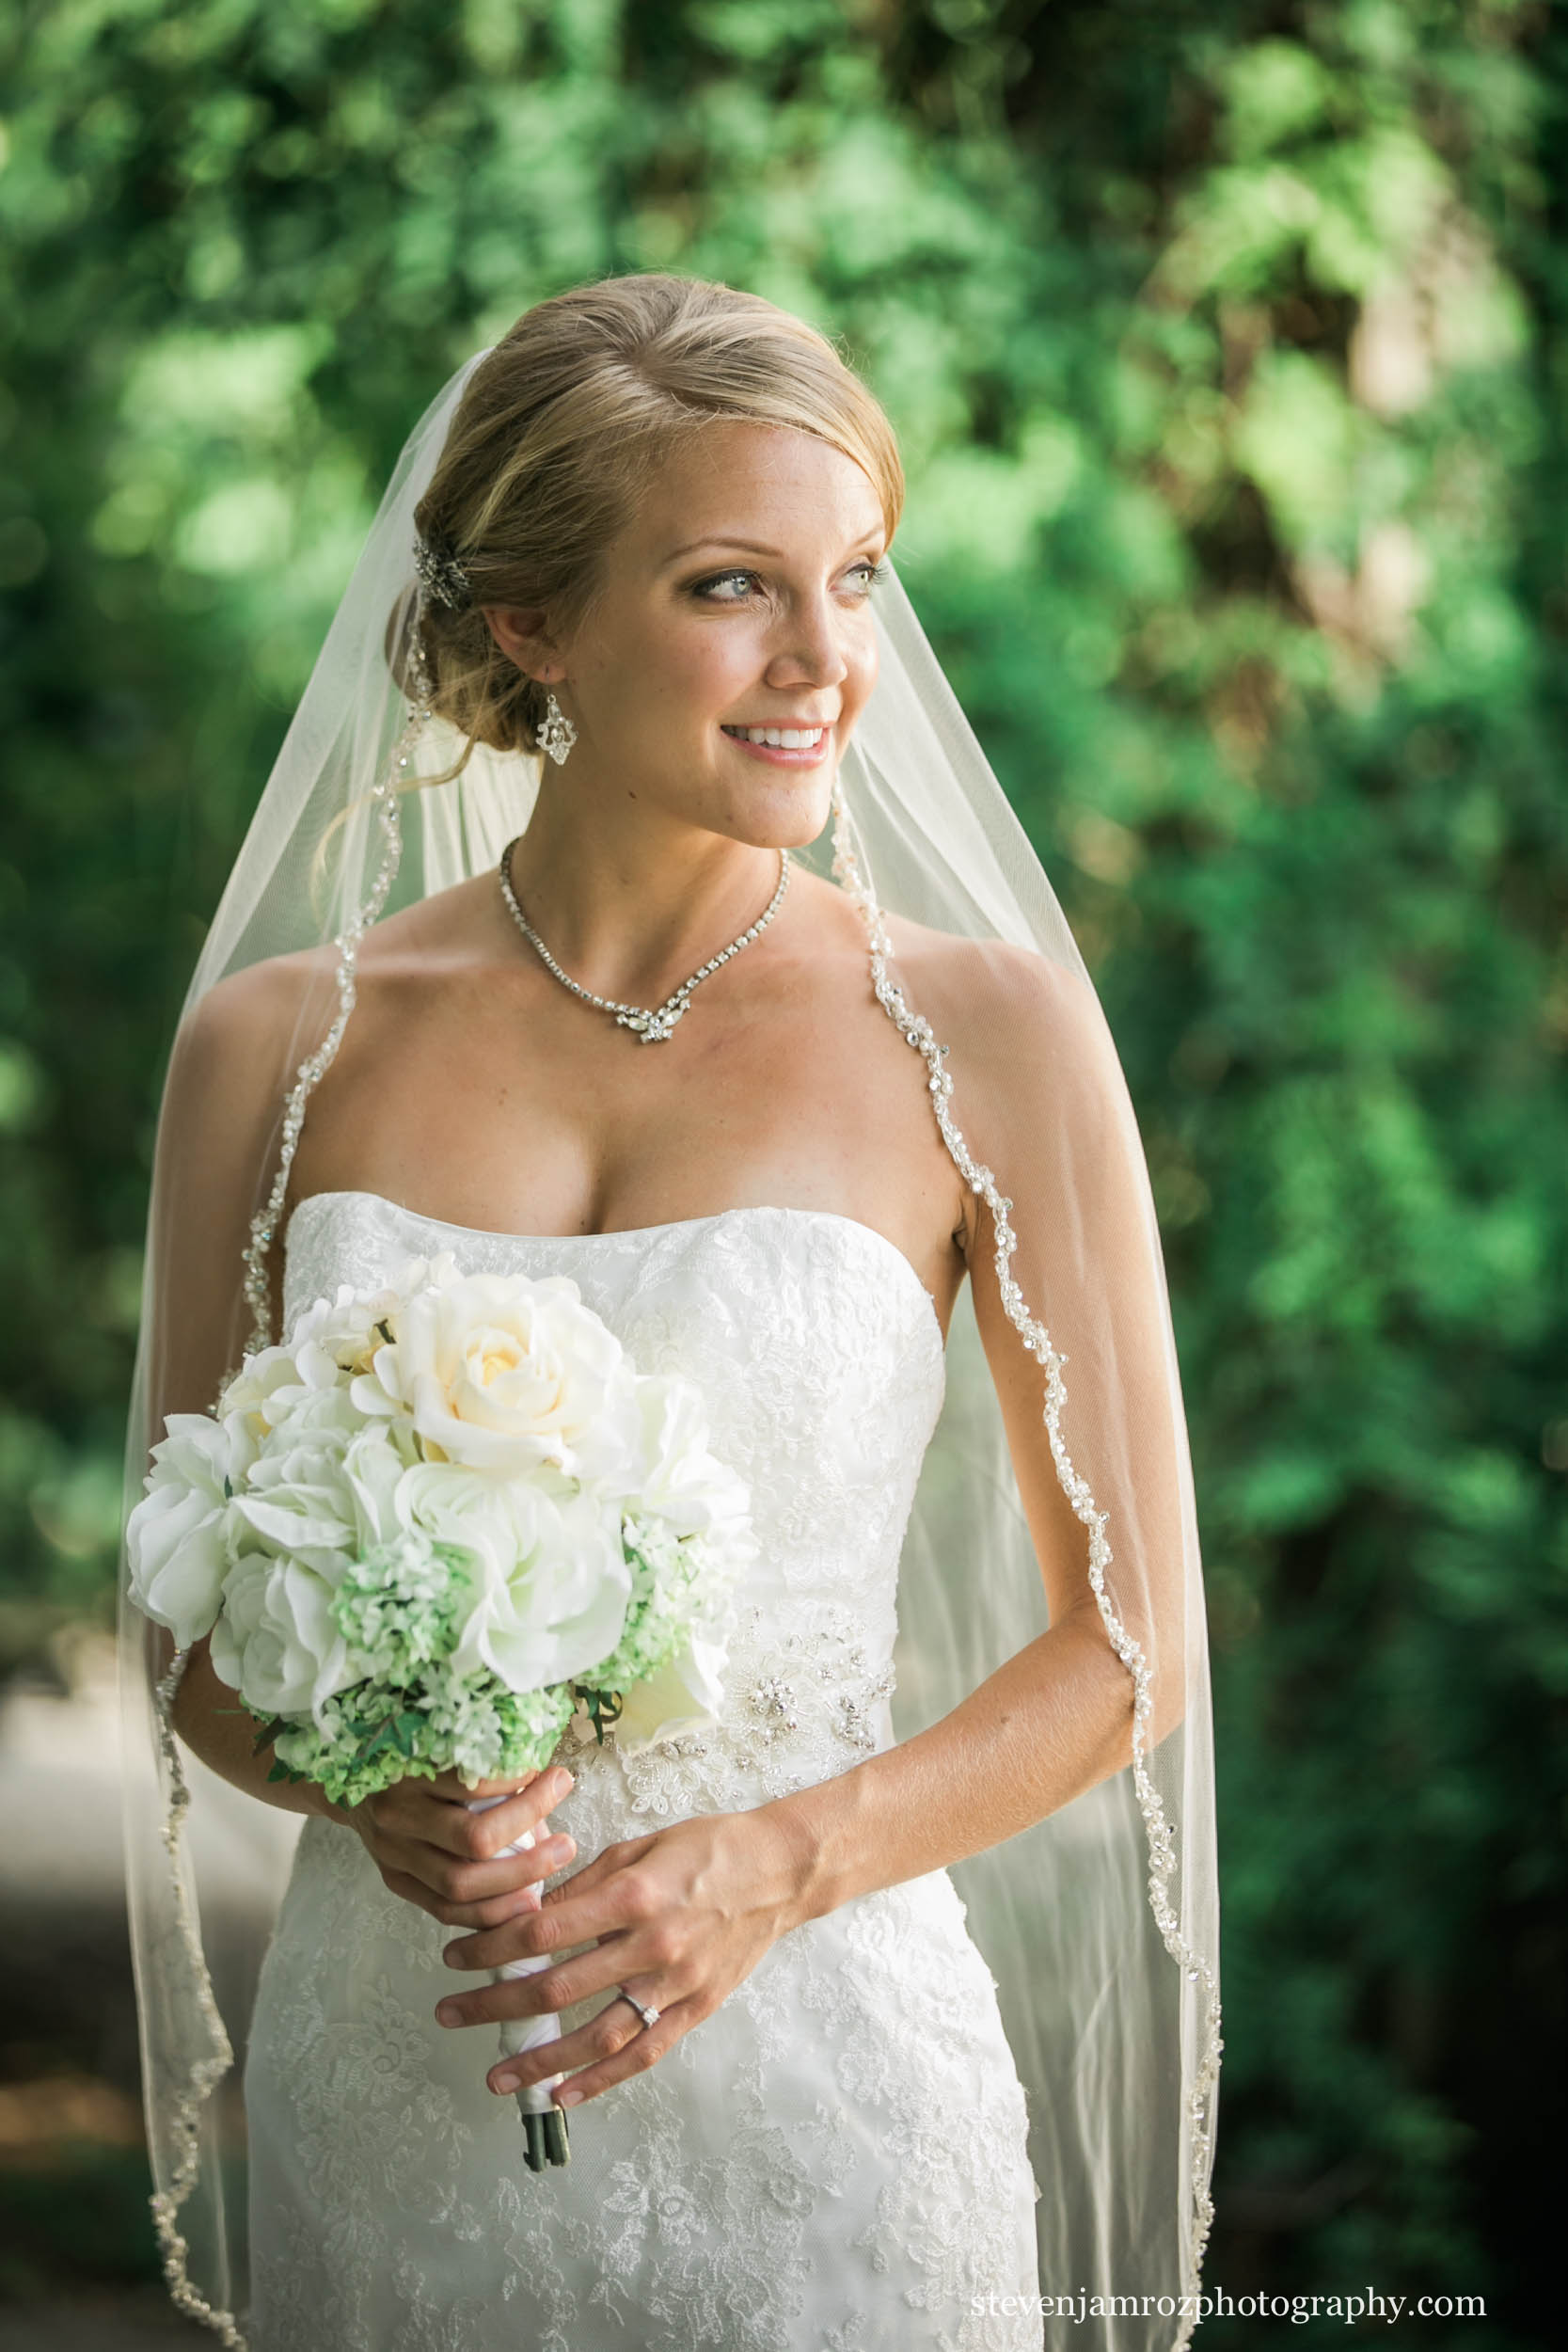 amazing-bride-flowers-steven-jamroz-photography-0114.jpg